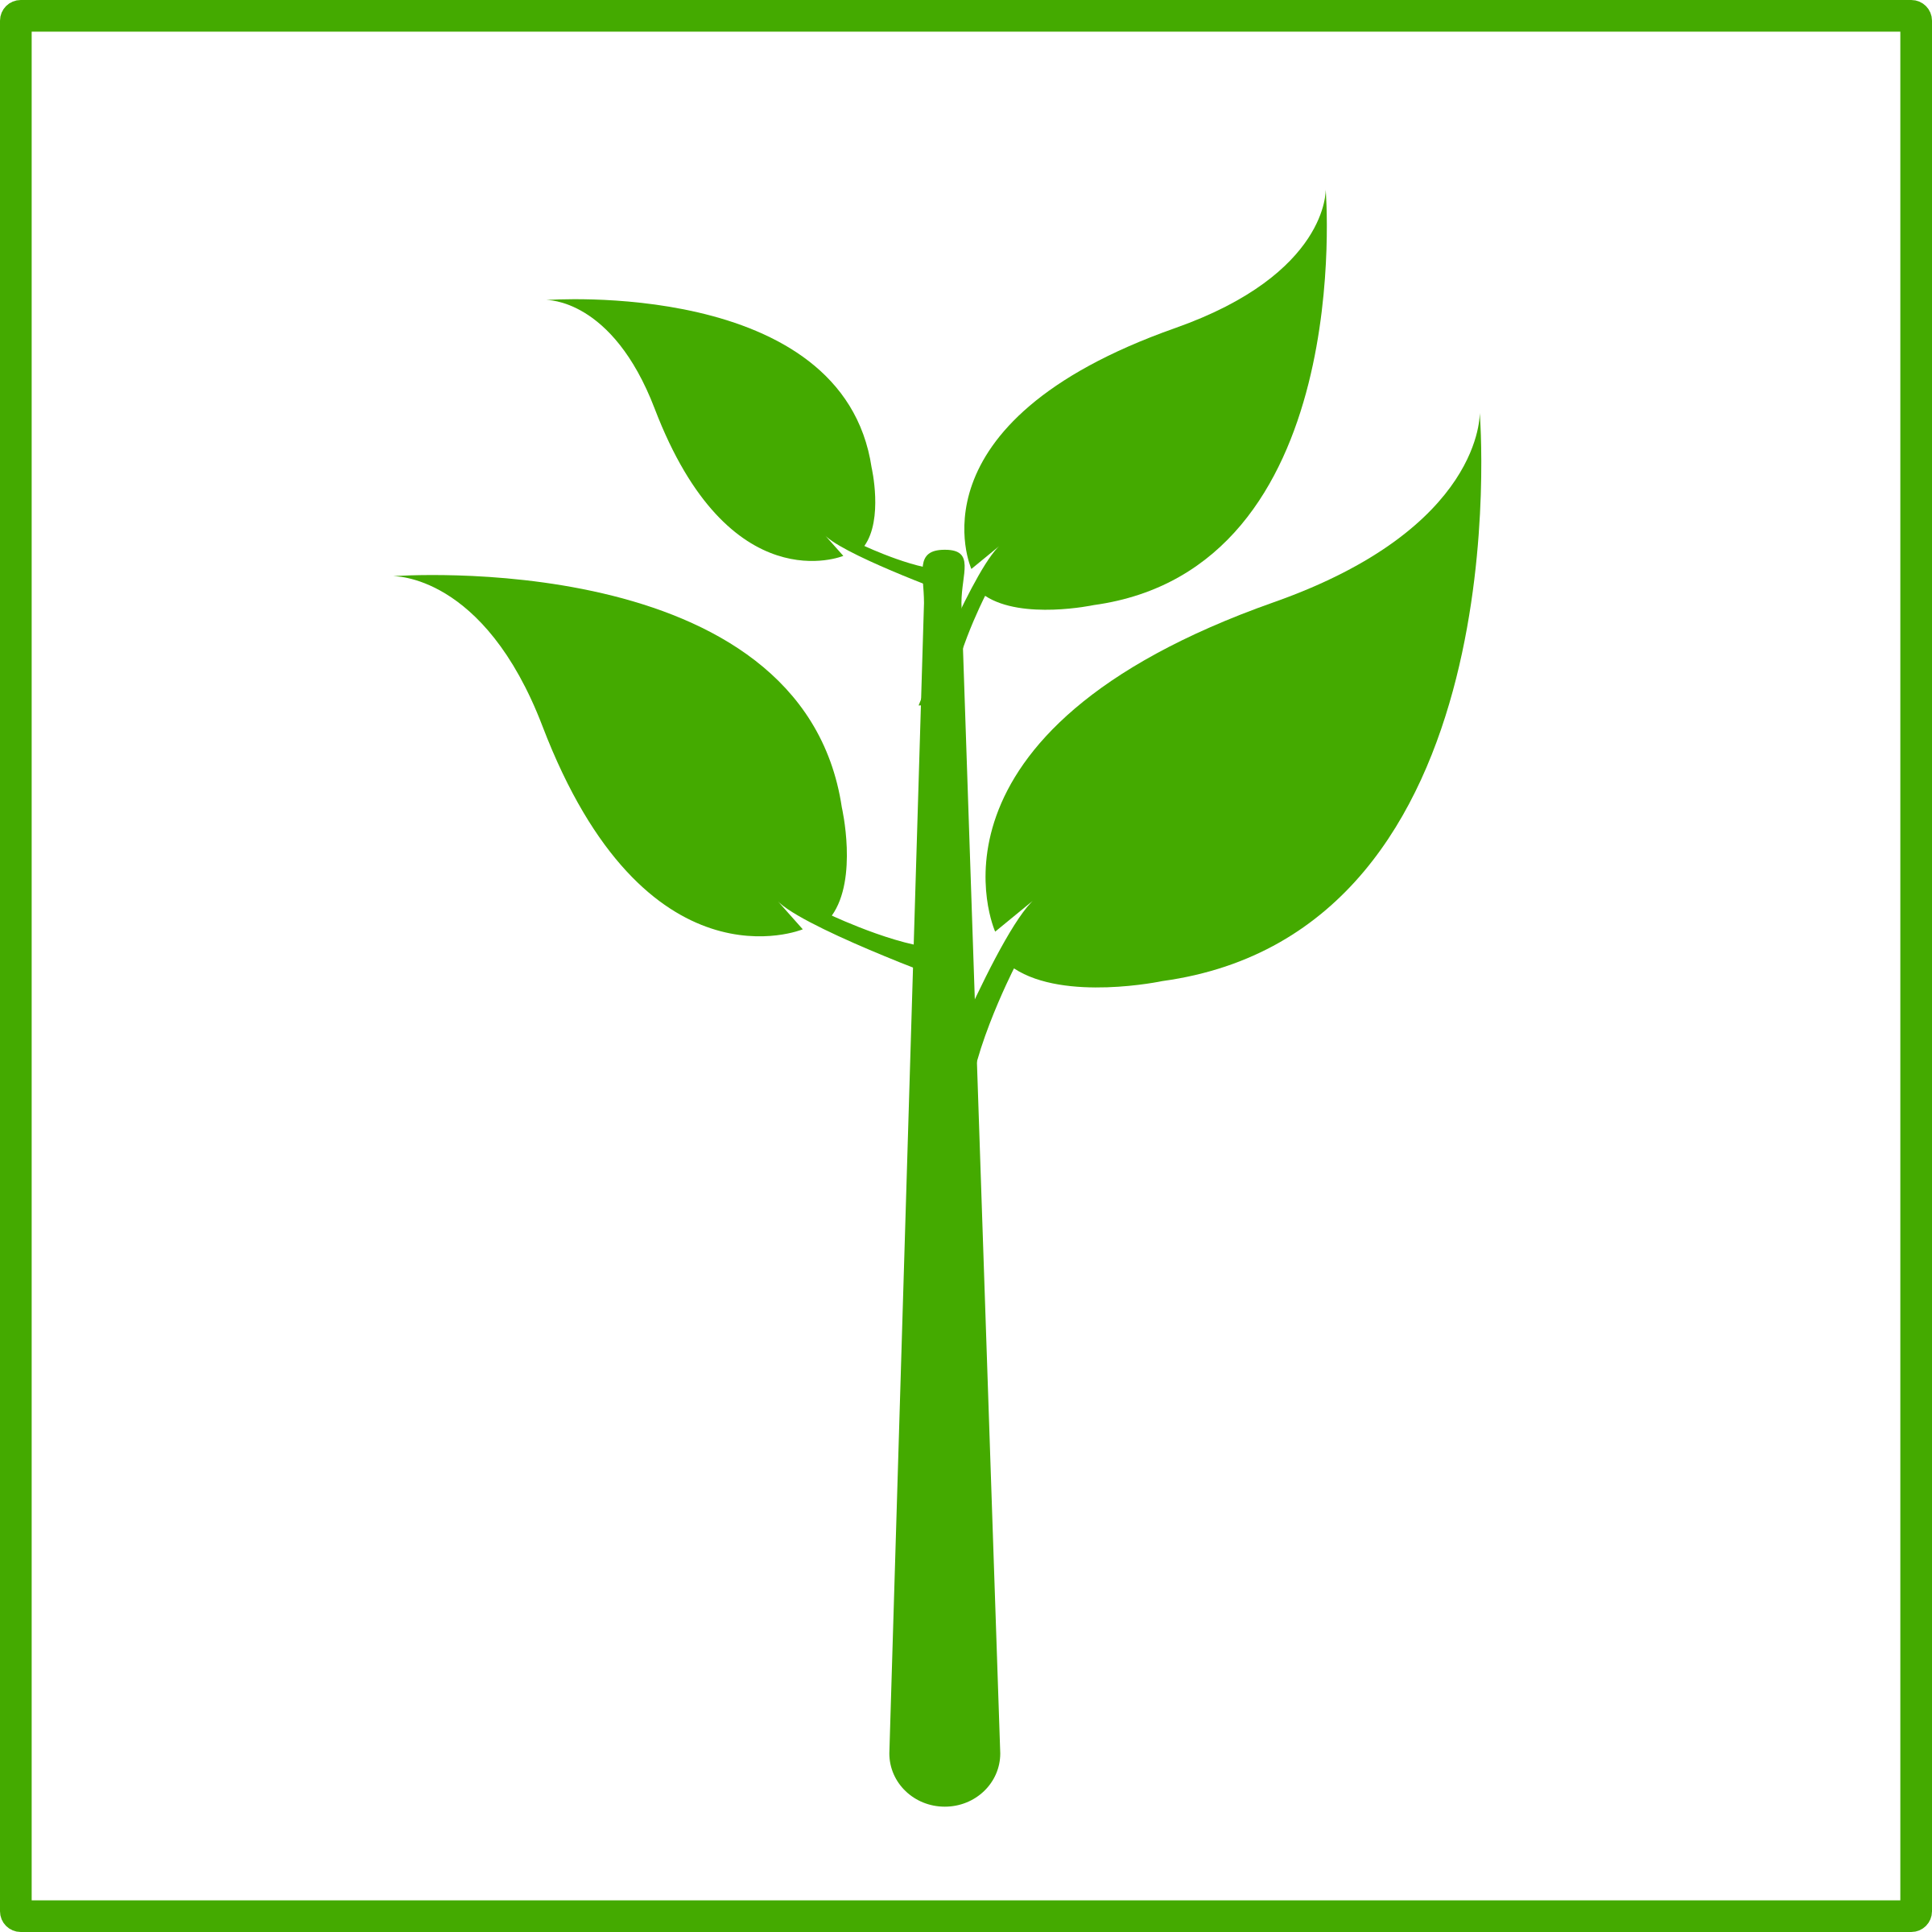 eco green plant icon by dominiquechappard